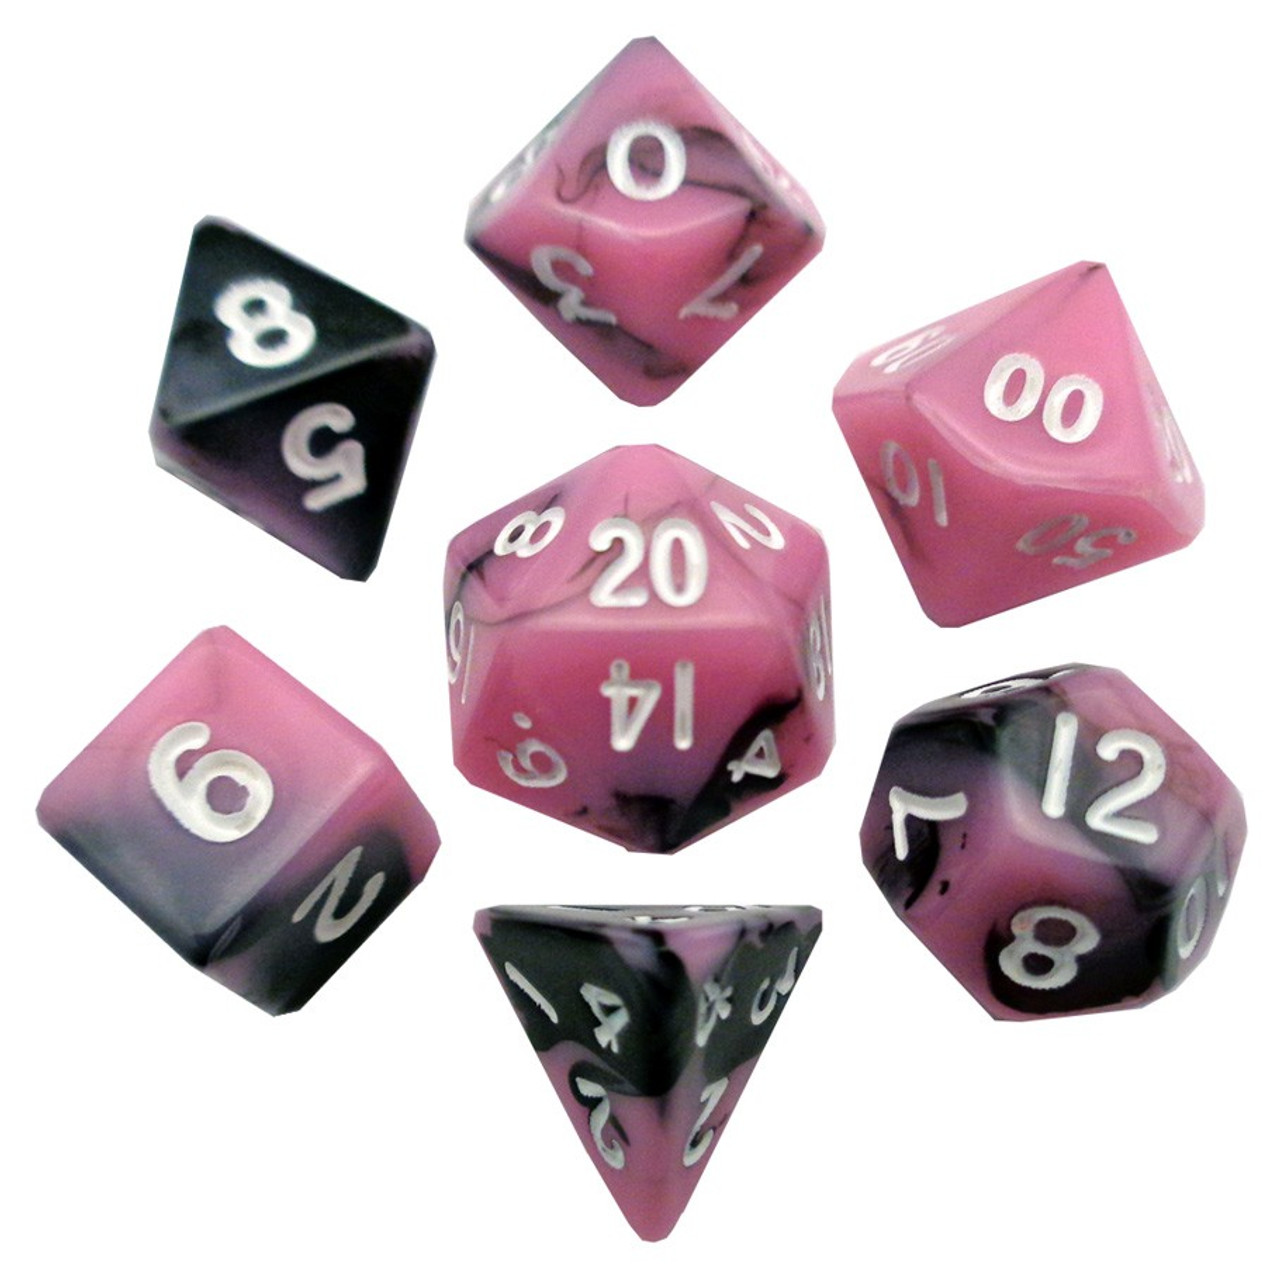 Pack of 6 Small 10mm Opaque Doubling Cube Dice Red with White Numbers